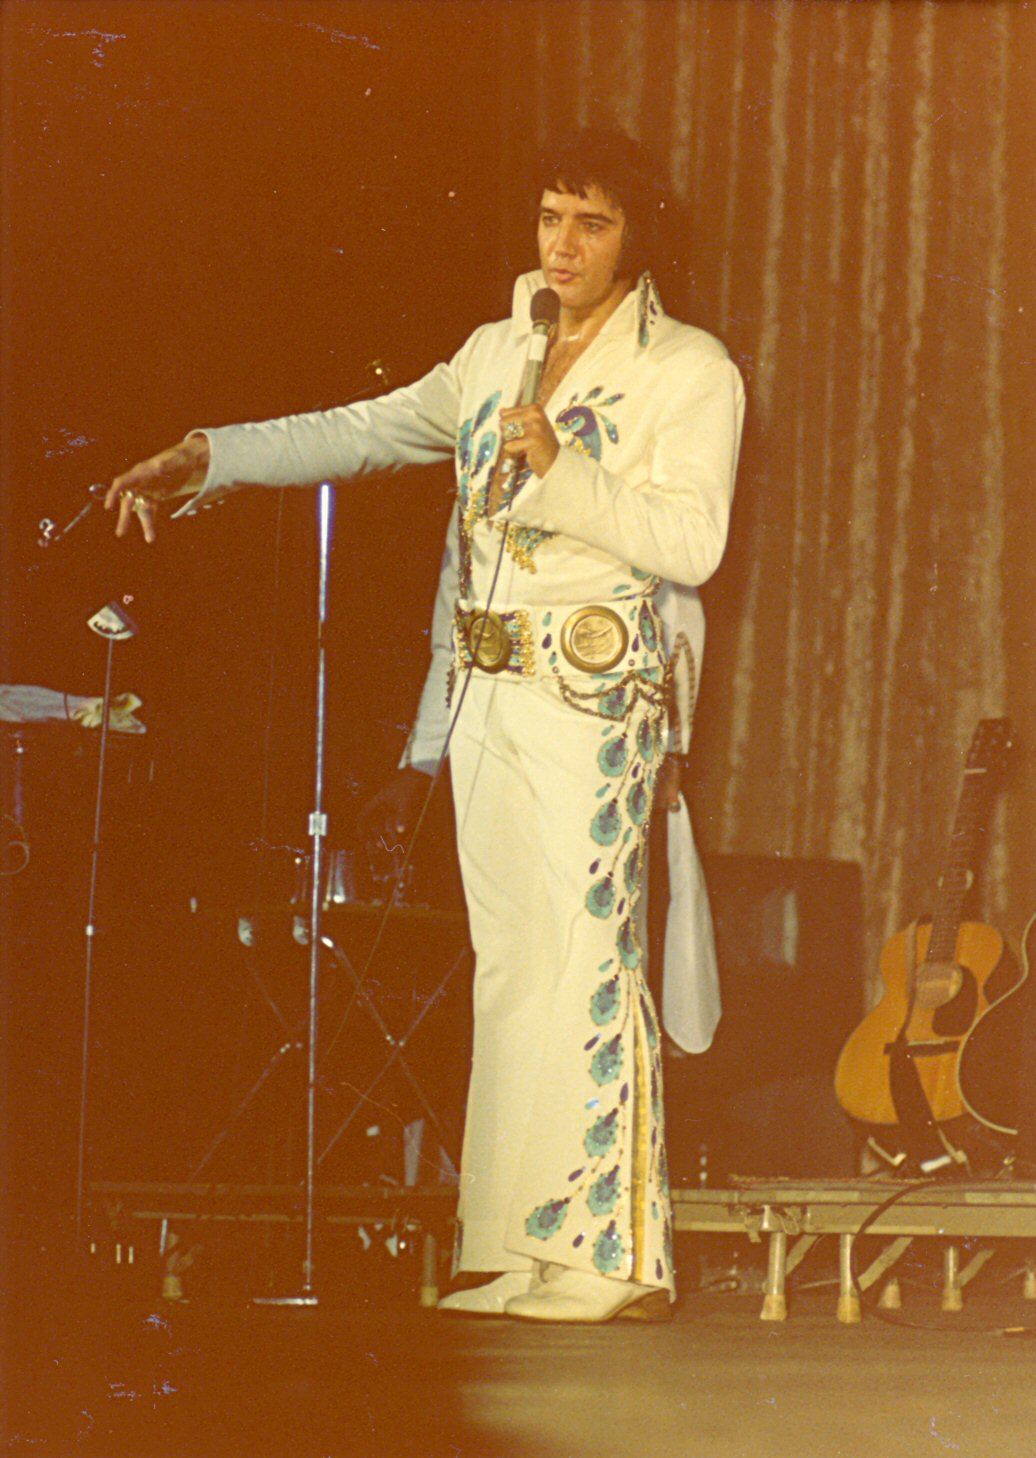 https://i1.wp.com/www.elvisconcerts.com/pictures/s74062102.jpg